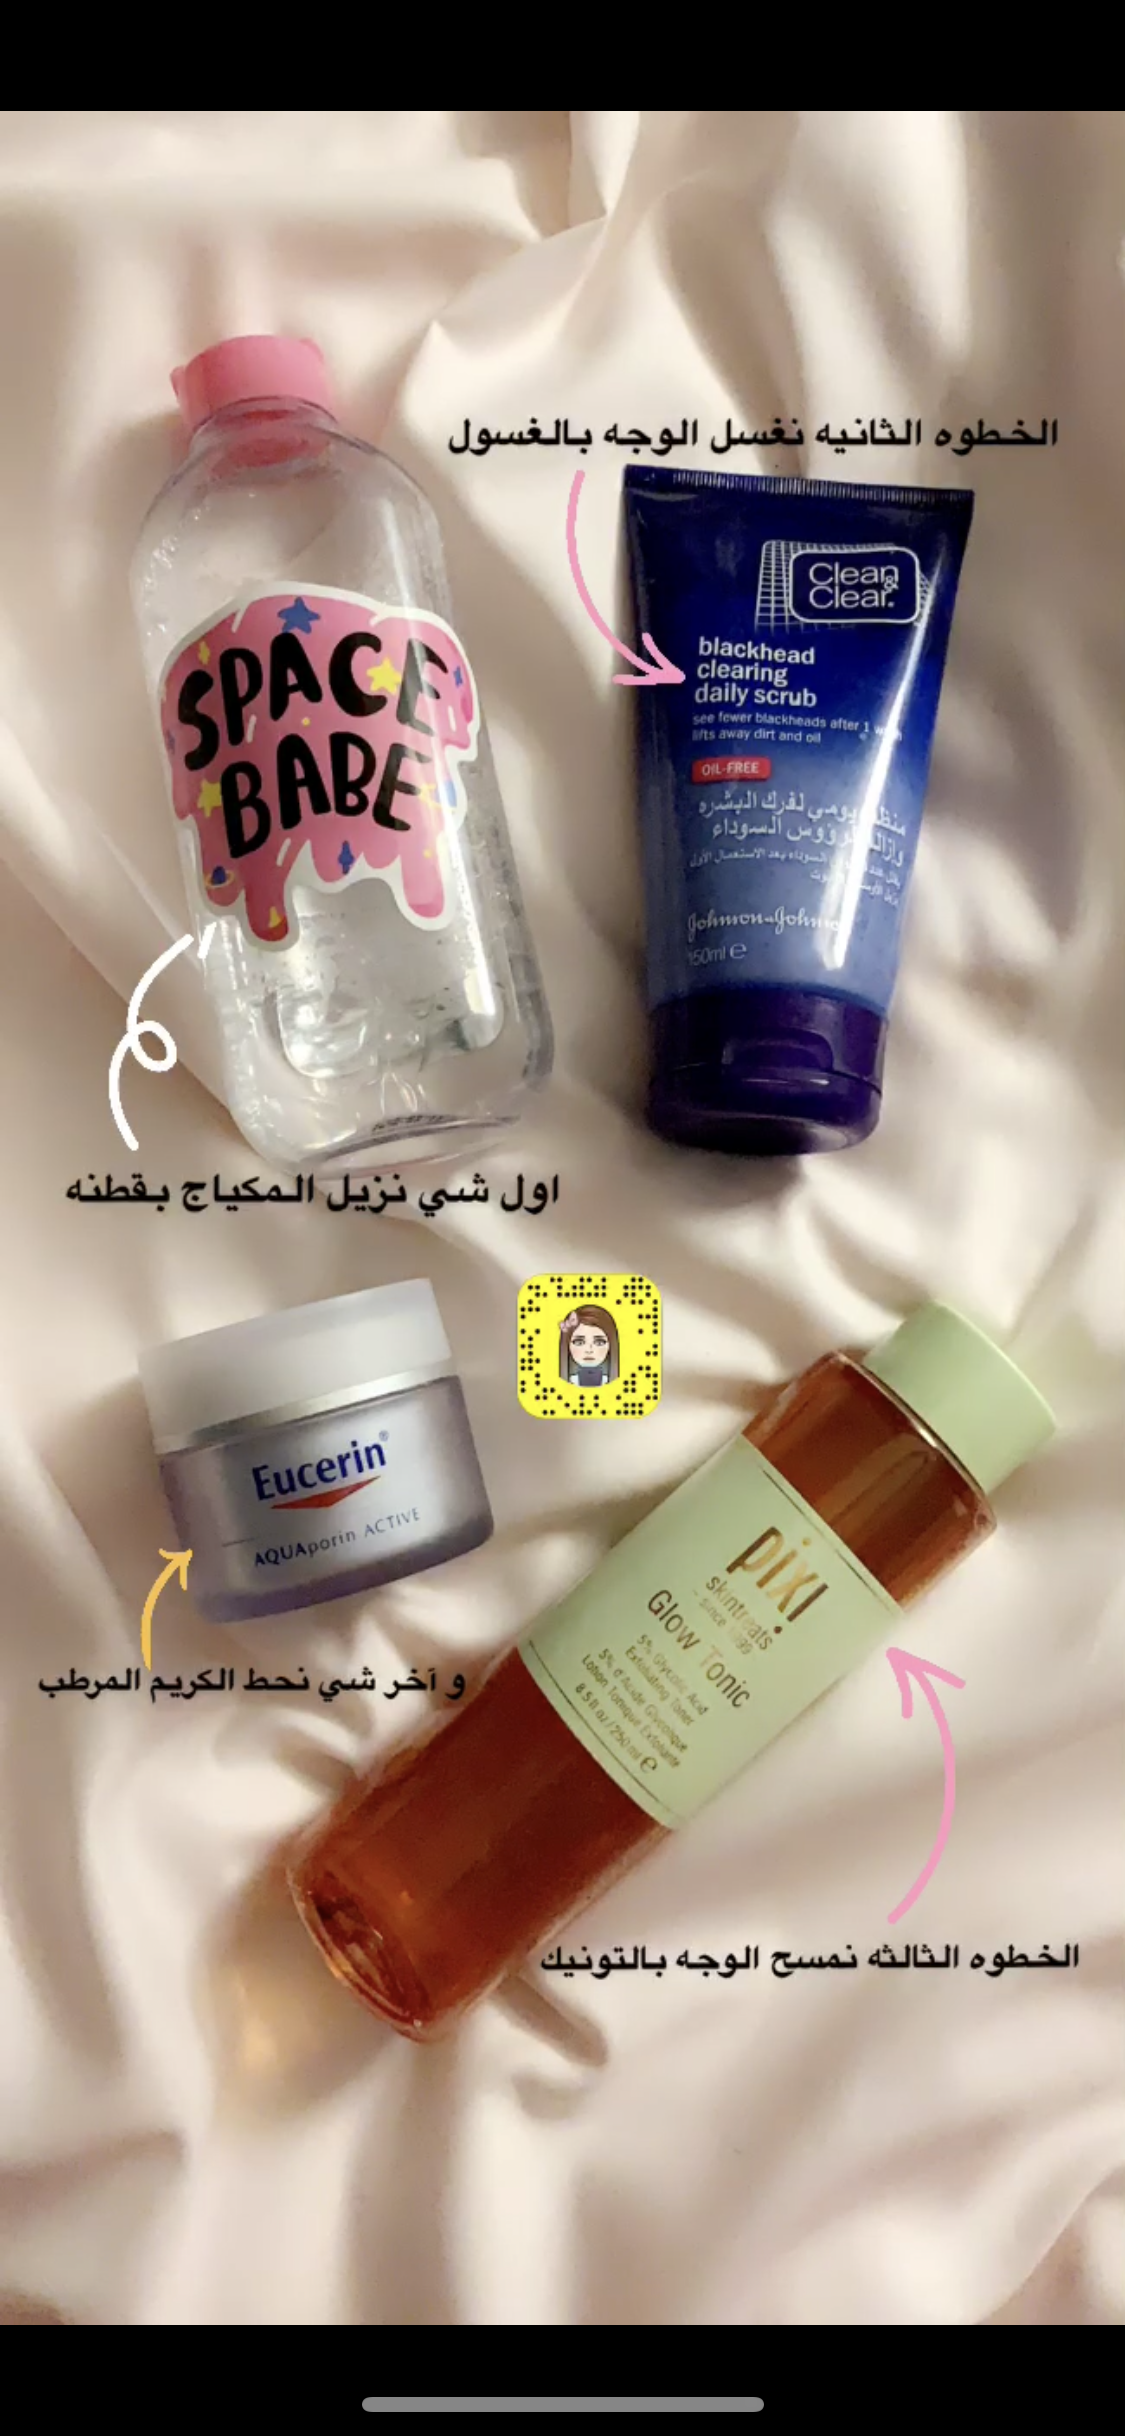 Pin by Noodyta on سناب نوديتا Skin care mask, Glam